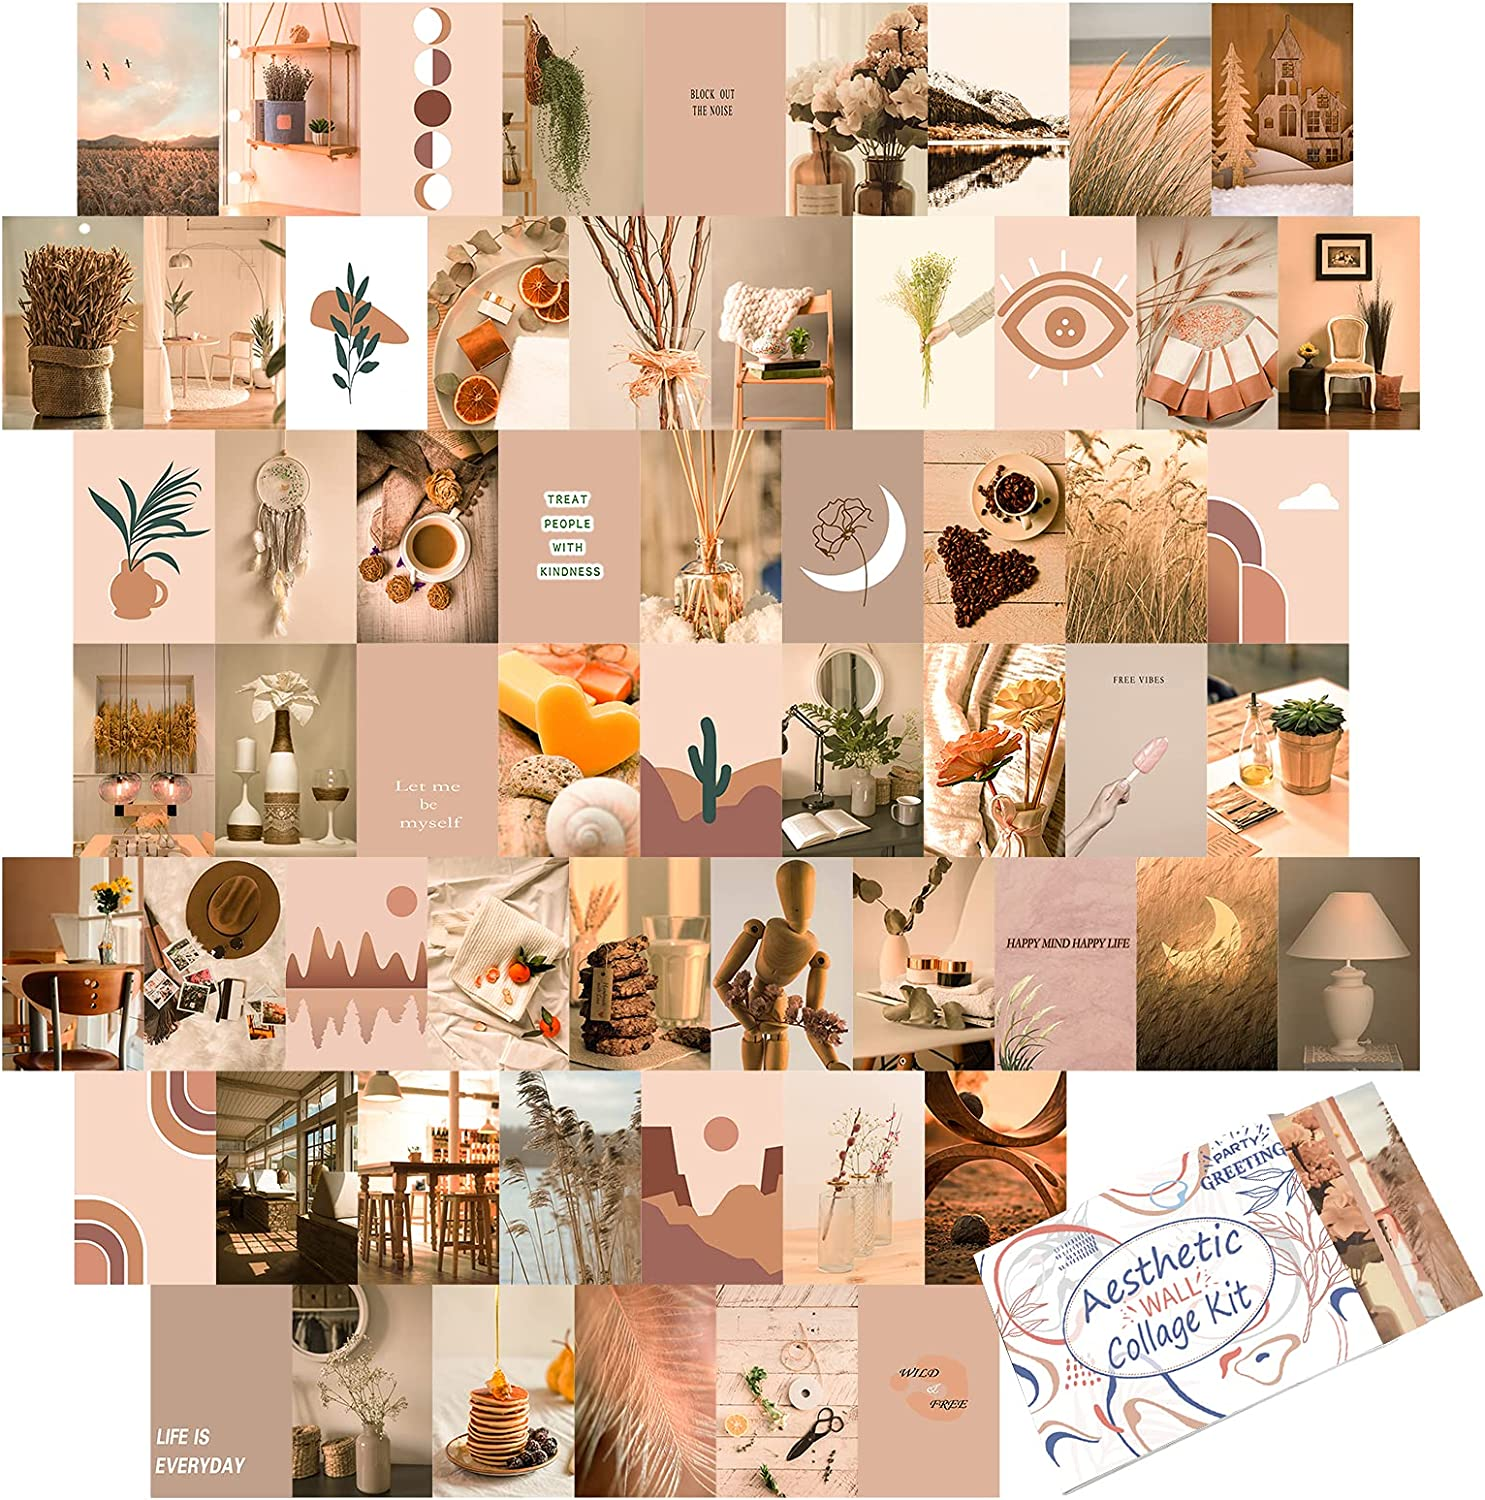 60 Pieces Room Decor for Bedroom, BOHO Aesthetic Photo Collage Kit Wall Art Pictures Euphoria Dorm Collage Kit for Teen Girls and Women,4x6inch Photo Collection